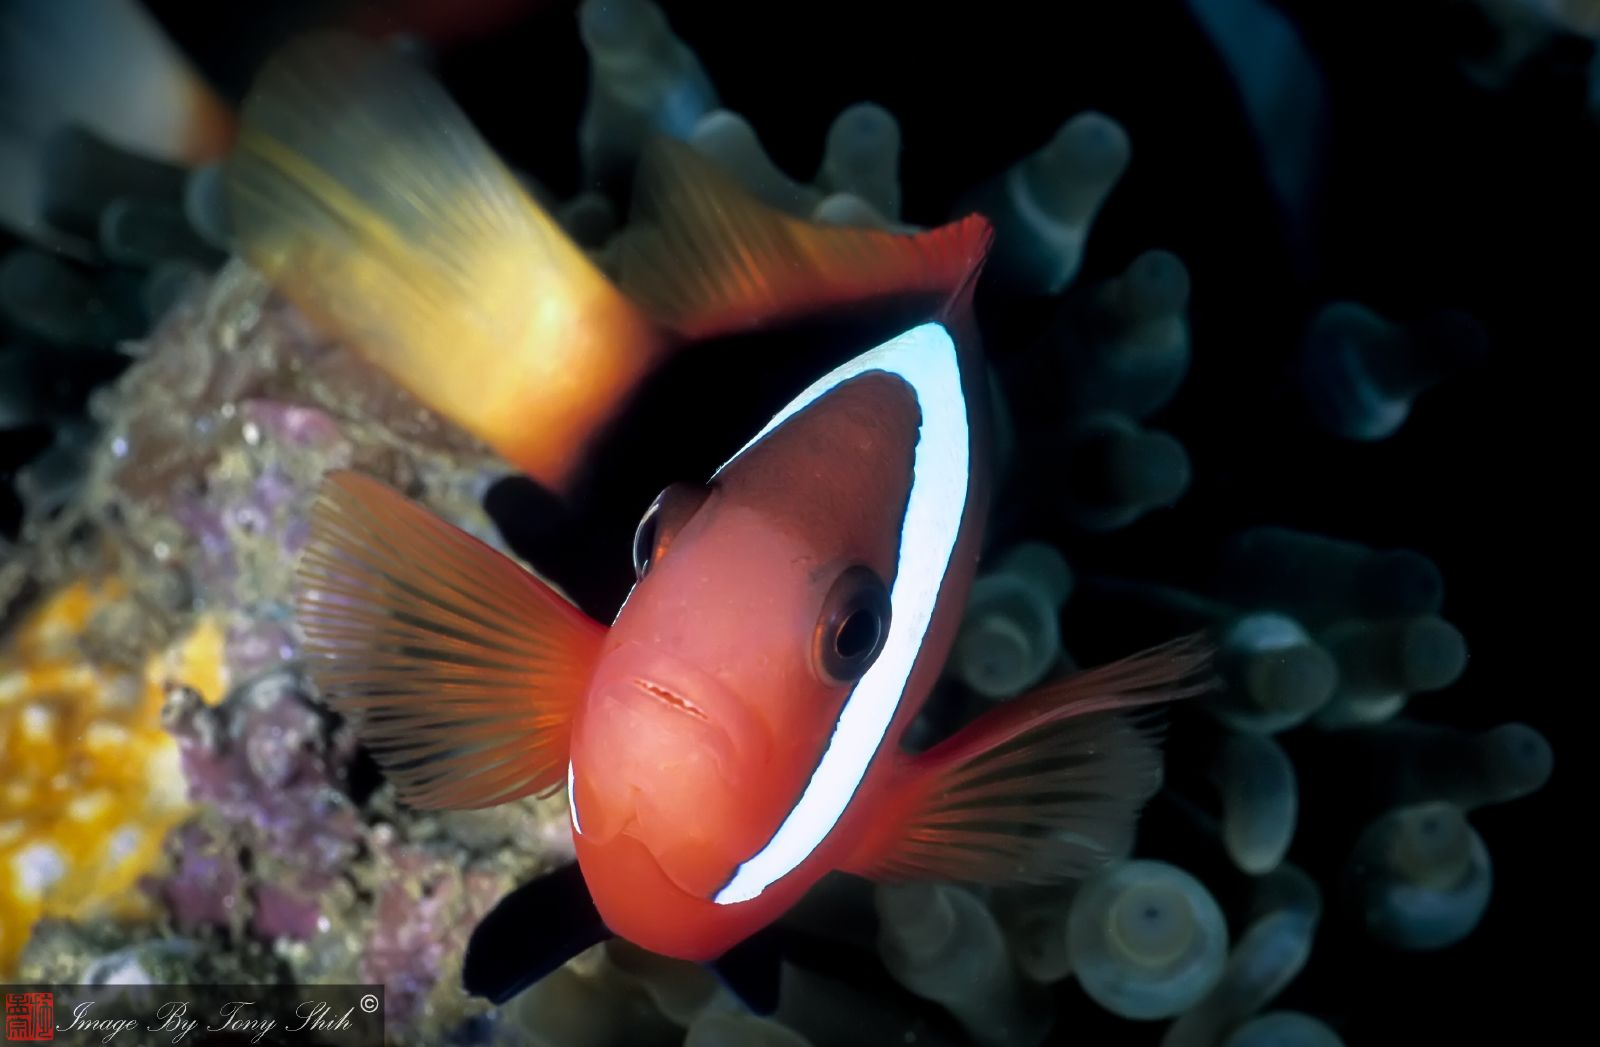 Amphiprion melanopus from Ambon, Maluku, Indonesia - image by Tony Shih - Flikr - Creative Commons BY-ND